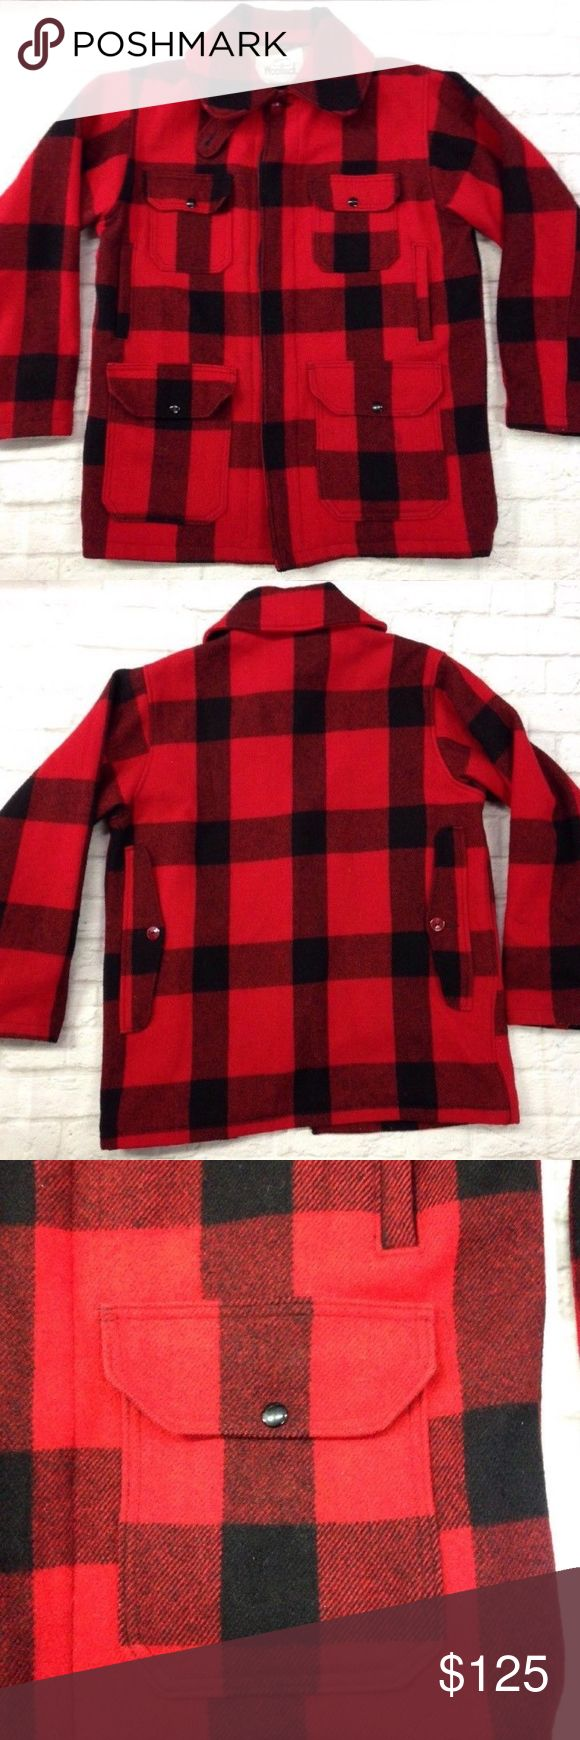 "WOOLRICH BUFFALO PLAID WOOL HUNTING JACKET vtg 42 Vintage Woolrich Buffalo Plaid Mackinaw Heavy Wool Hunting Coat Jacket   SIZE: 42  SHELL: 85% Wool / 15% Nylon LINING:75% Polyester / 25% Cotton  COLOR:  Red & Black Buffalo Plaid  NECKLINE TO HEMLINE MEASUREMENT: 30 ""  PIT TO PIT MEASUREMENT:  23""  SLEEVE LENGTH FROM TOP OF SHOULDER MEASUREMENT:  24""  Heavyweight Wool!  This wool hunting coat originated in the 1800s and is still as popular today. The rugged wool-blend shell wards off the…"